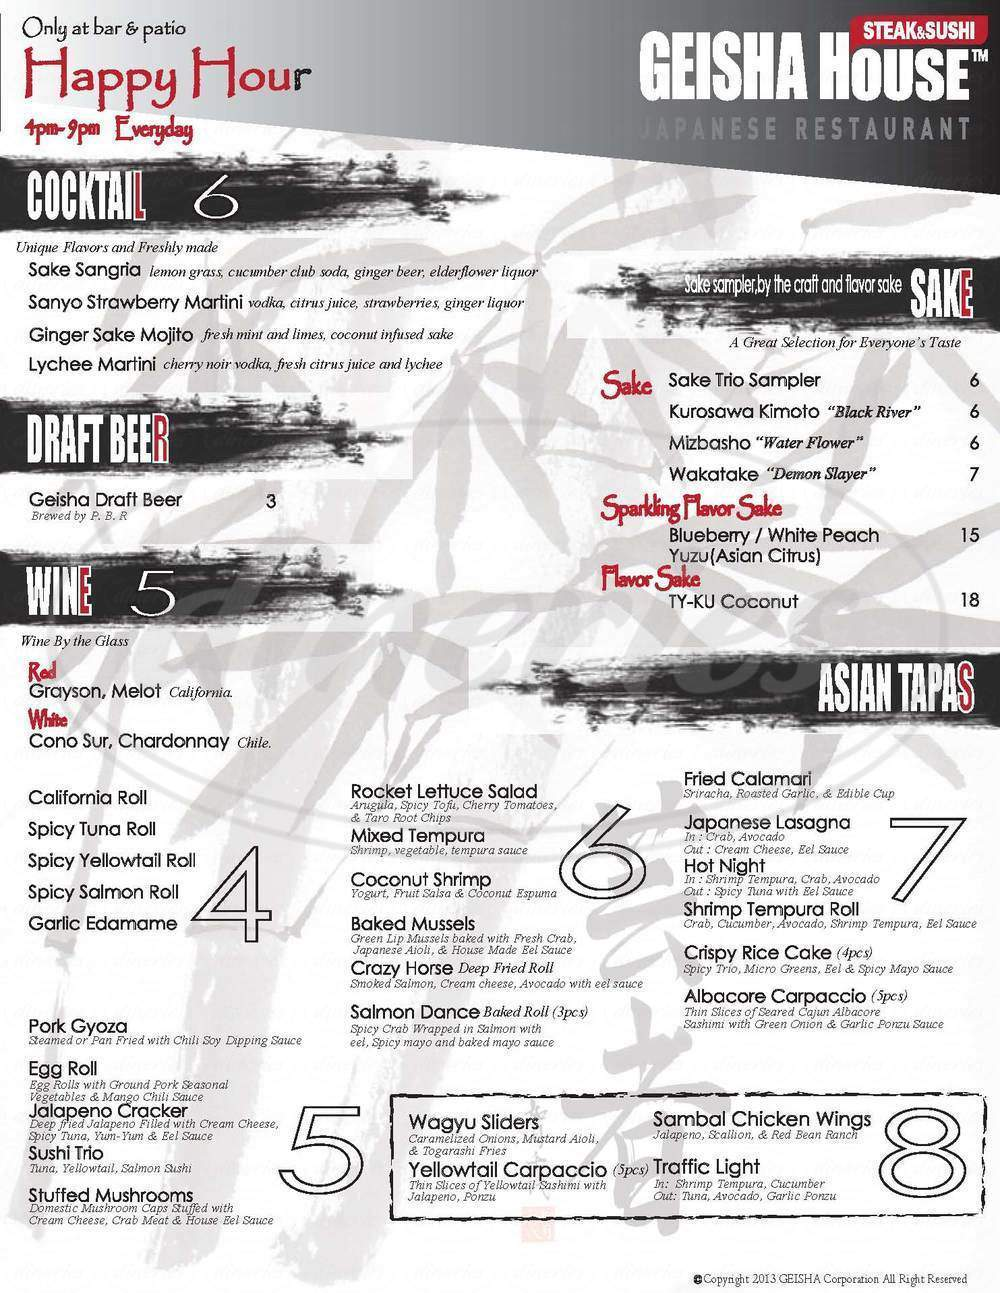 menu for Geisha House Steak & Sushi